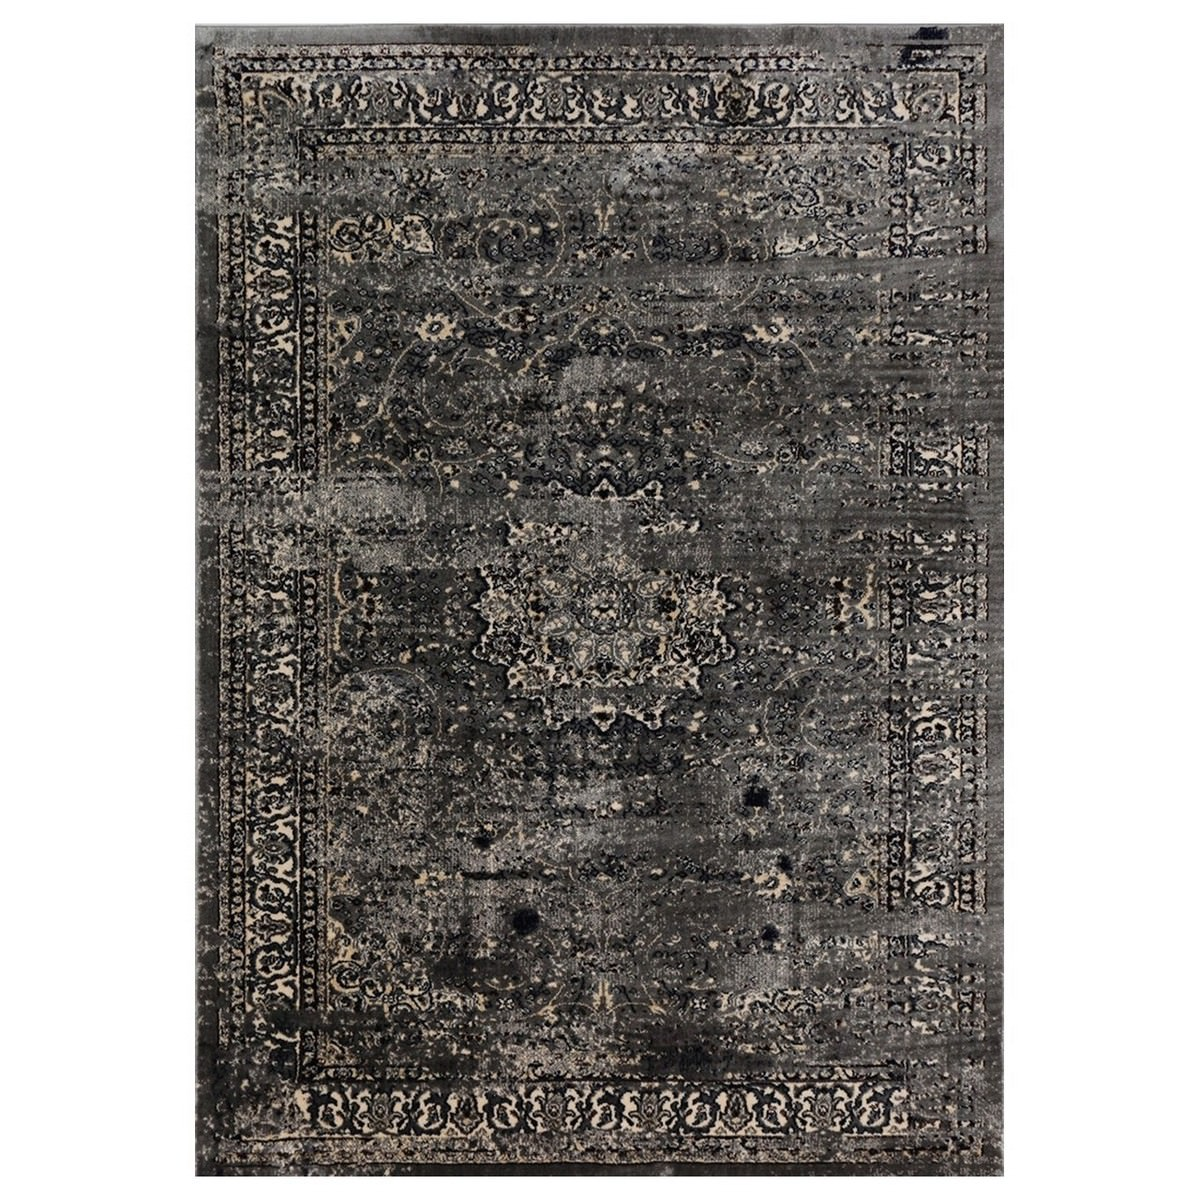 Artifact Parisa Distressed Oriental Rug, 120x170cm